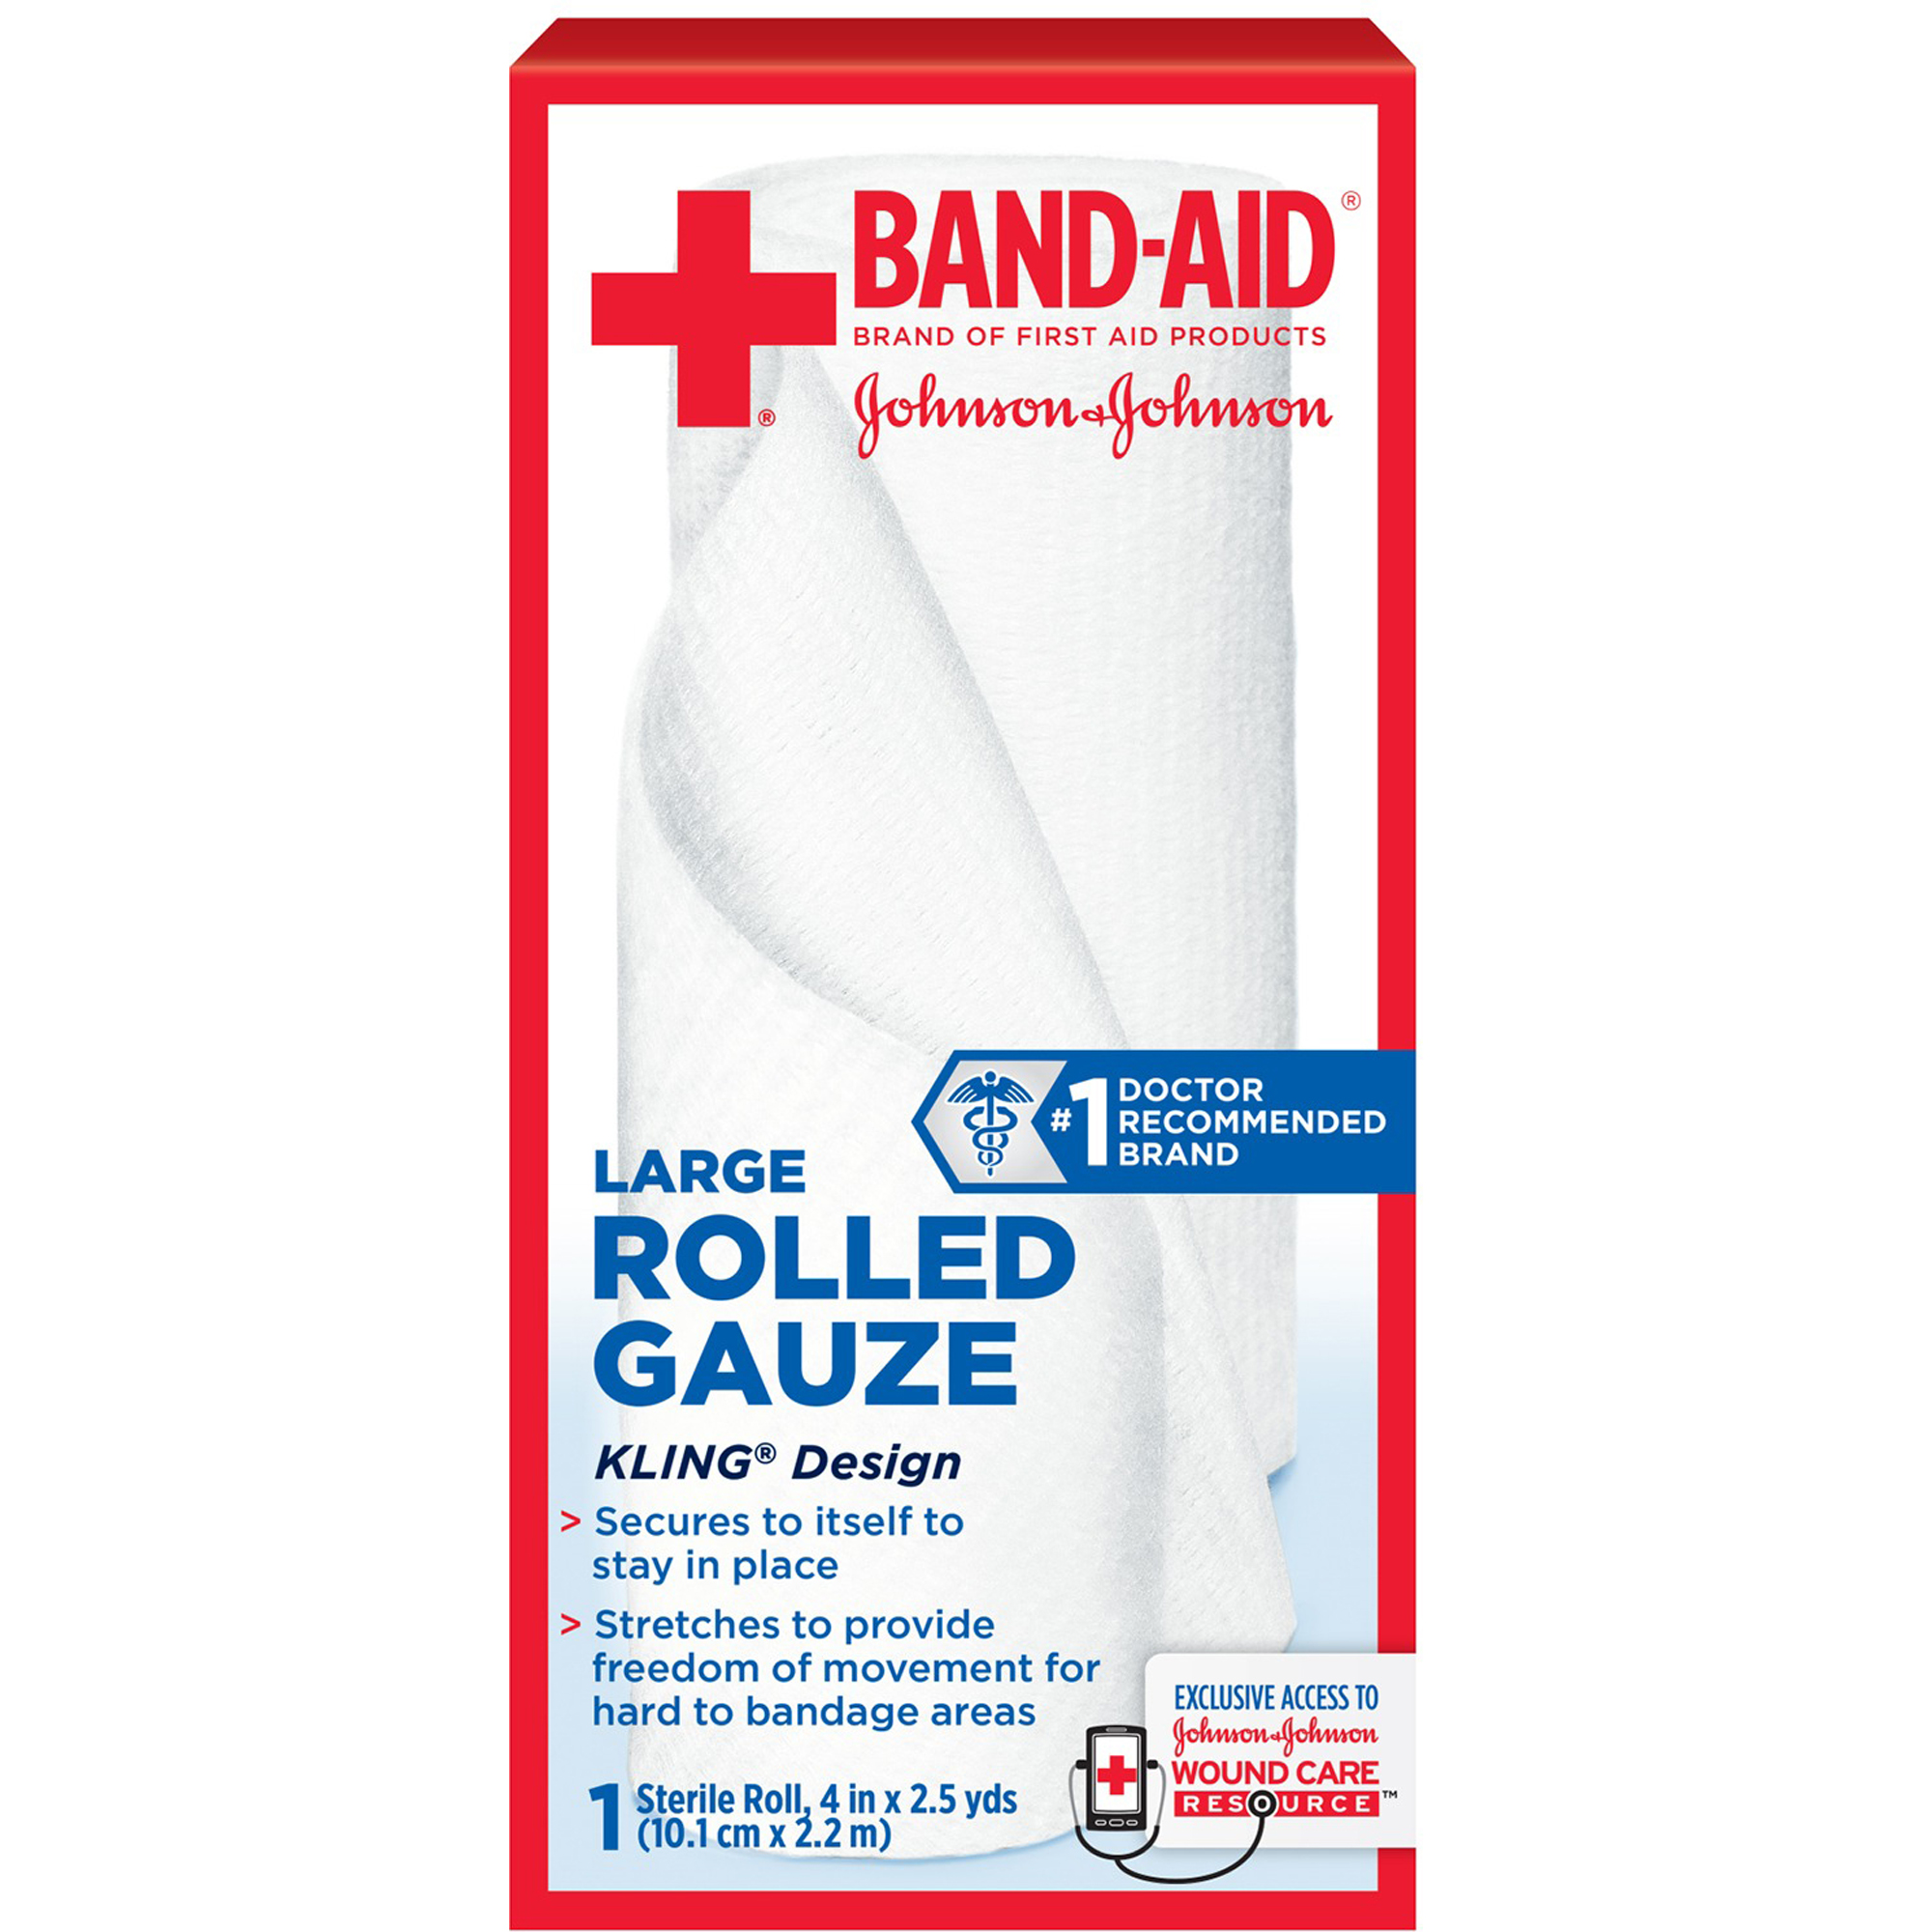 Band-Aid Brand of First Aid Products Rolled Gauze, 4 Inches by 2.5 Yards